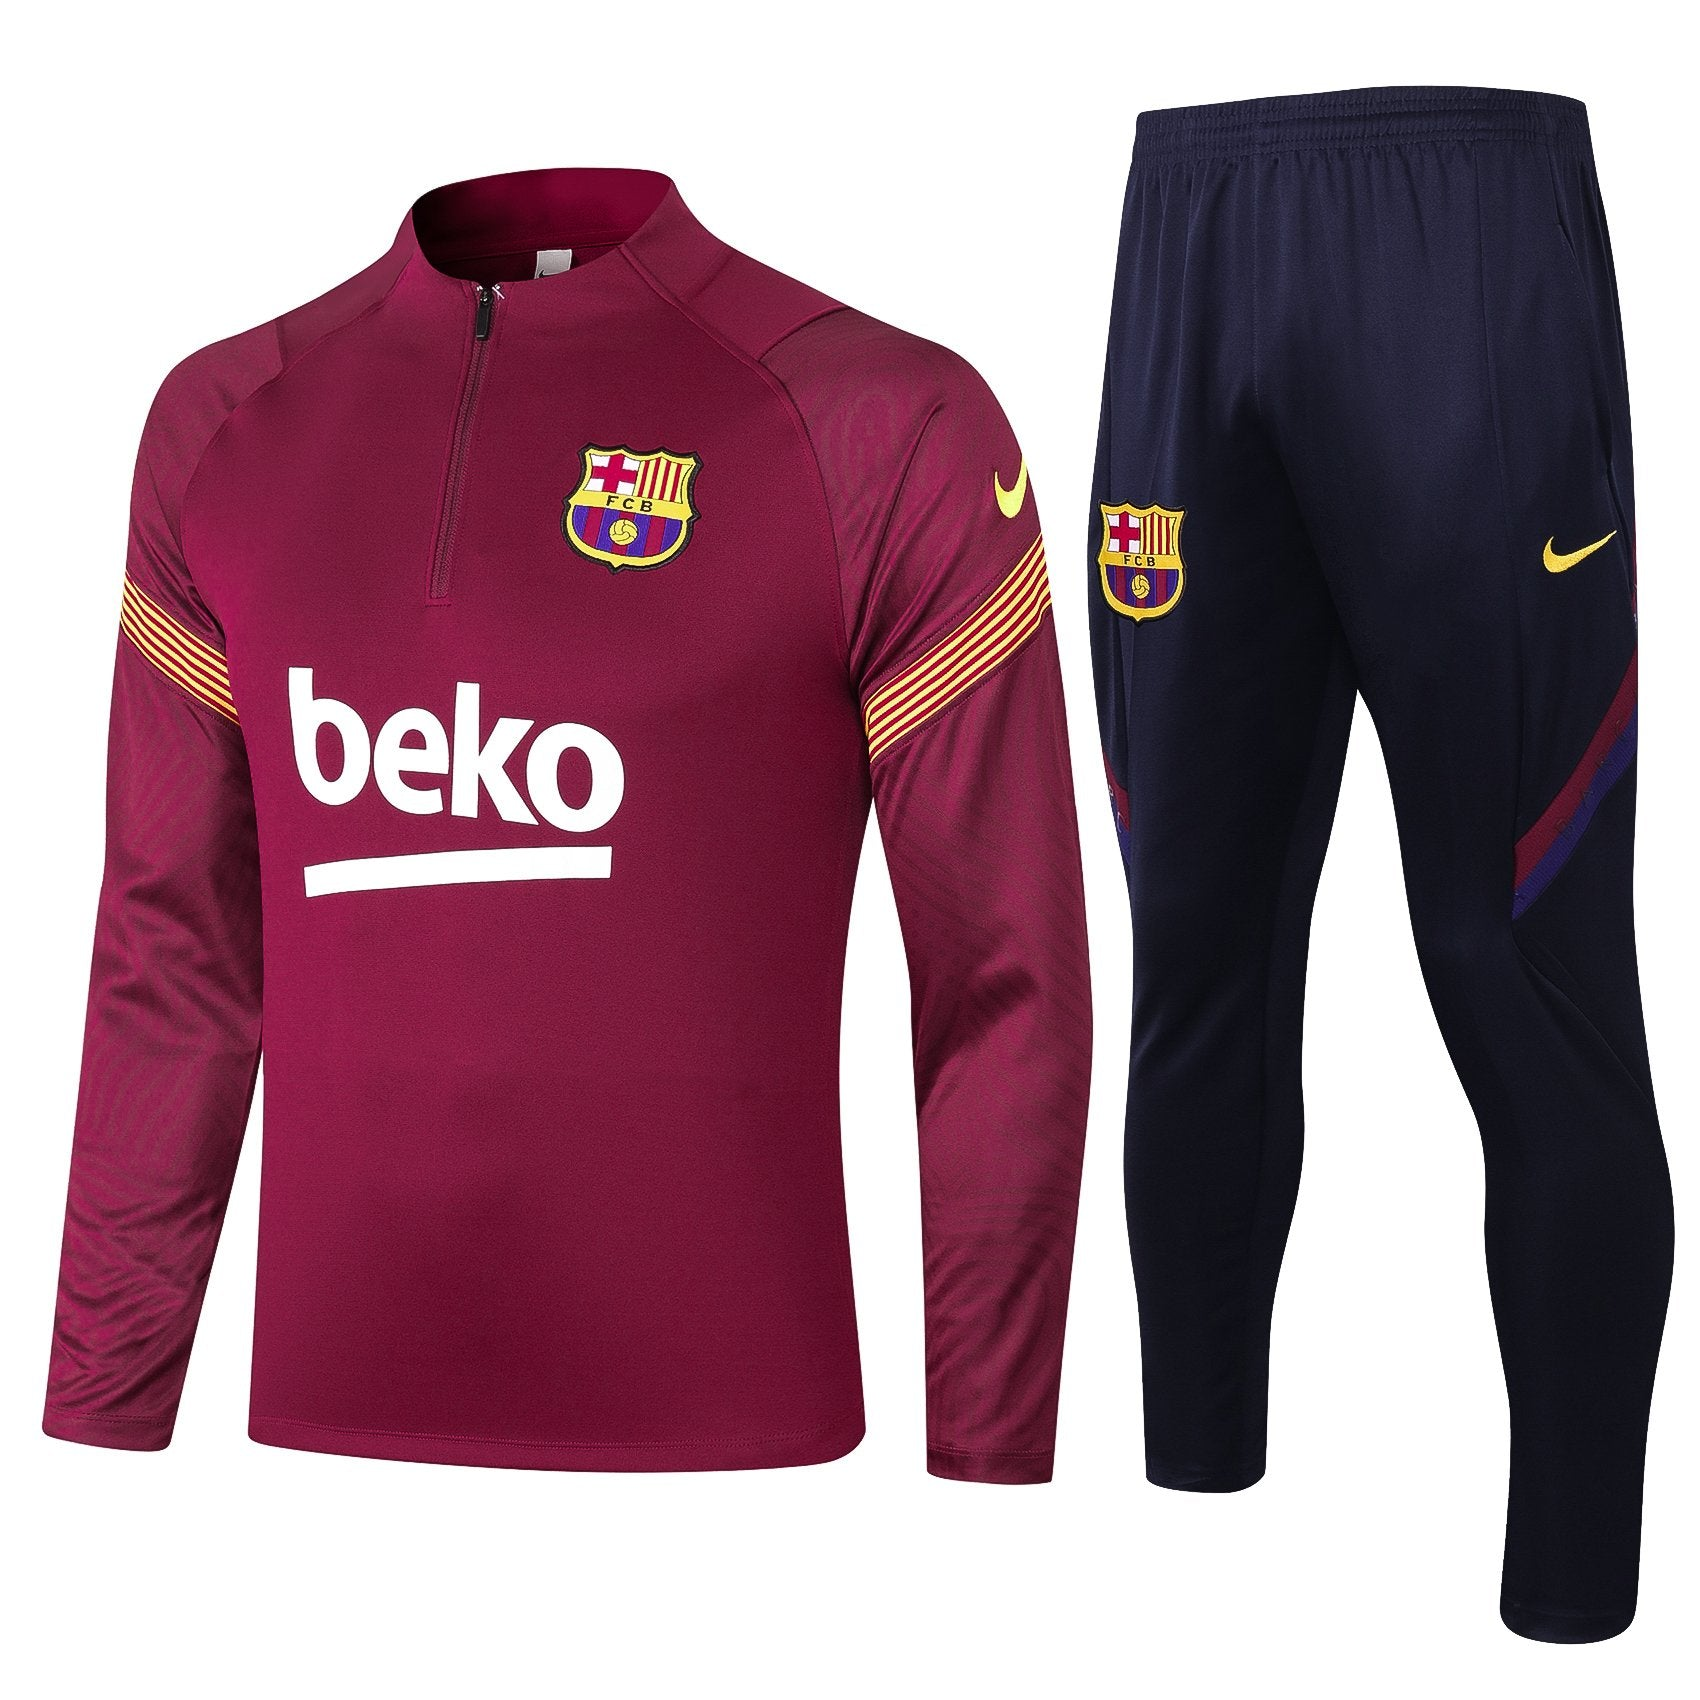 Survetement FC Barcelone Nike Homme 2021 Foot Online freeshipping - Foot Online